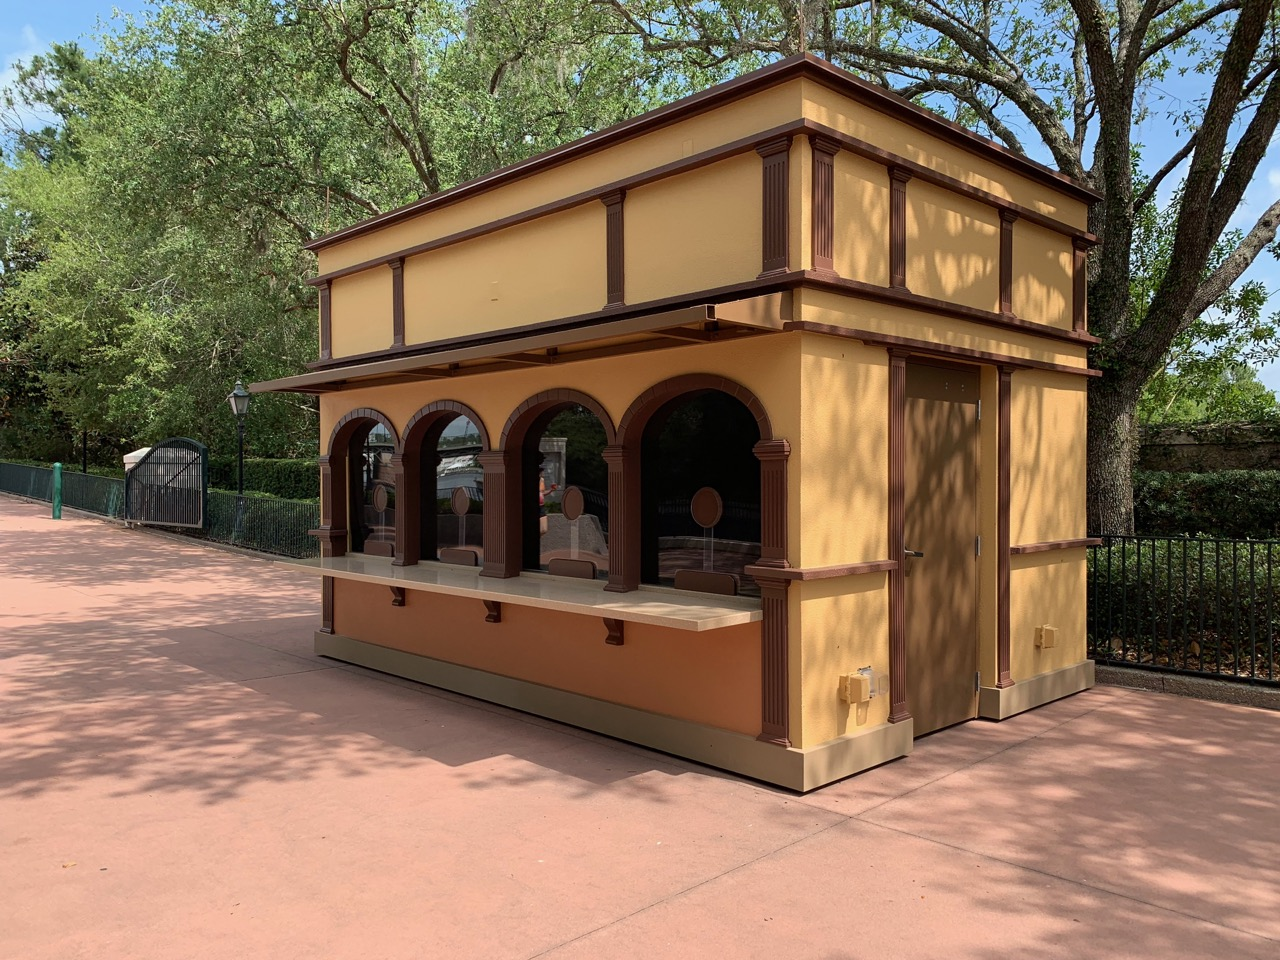 disney world trip report early summer 2019 day six ticket booth.jpeg